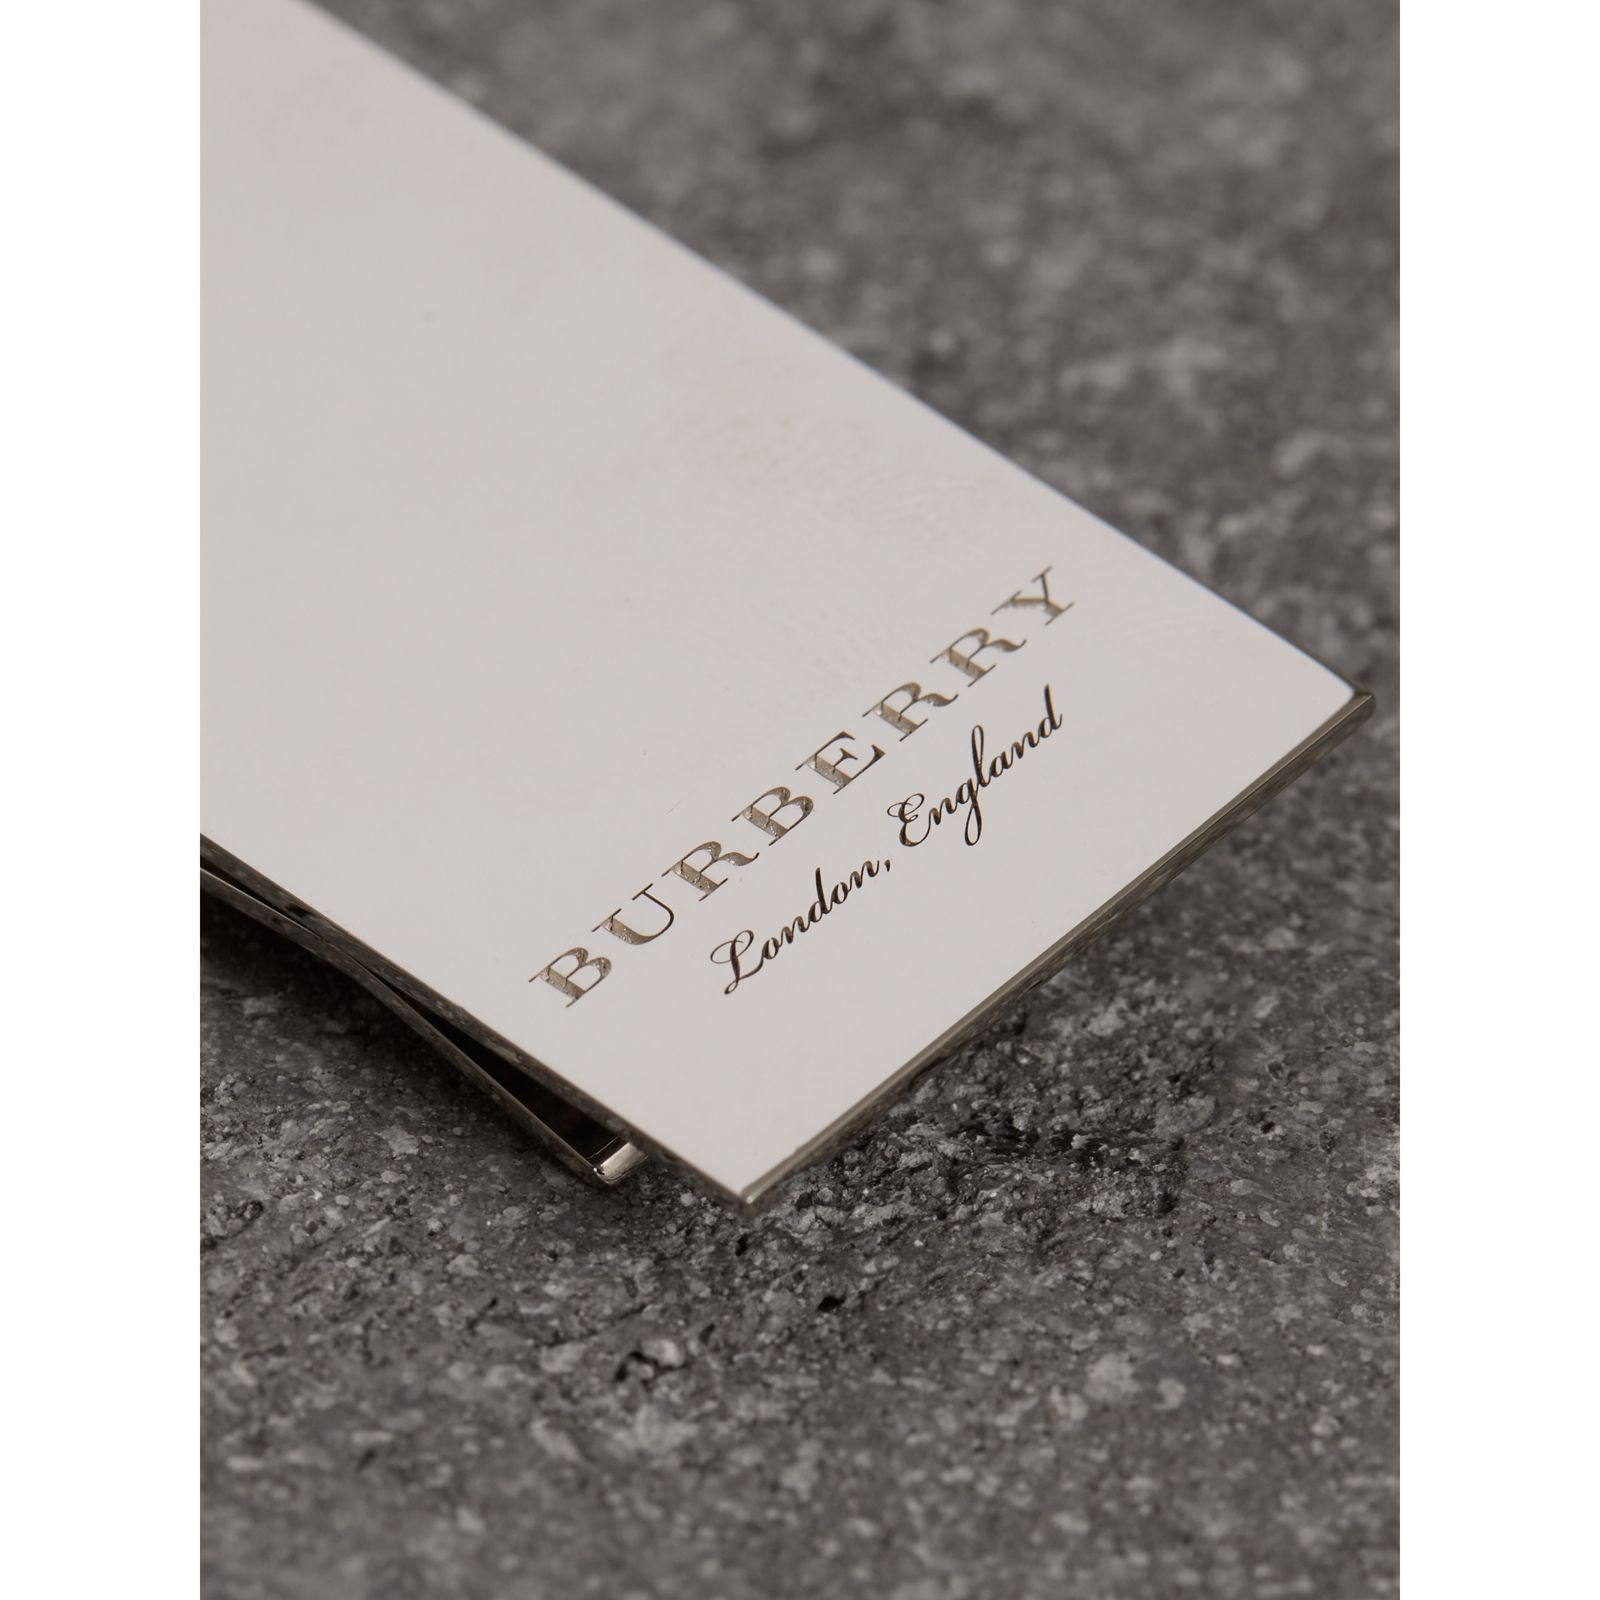 Best Money Clip Wallet Say Goodbye To Your Overstuffed Urby Burberry London For Men Non Box Group Plc Established In 1856 By Thomas Is A British Luxury Fashion House Headquartered England